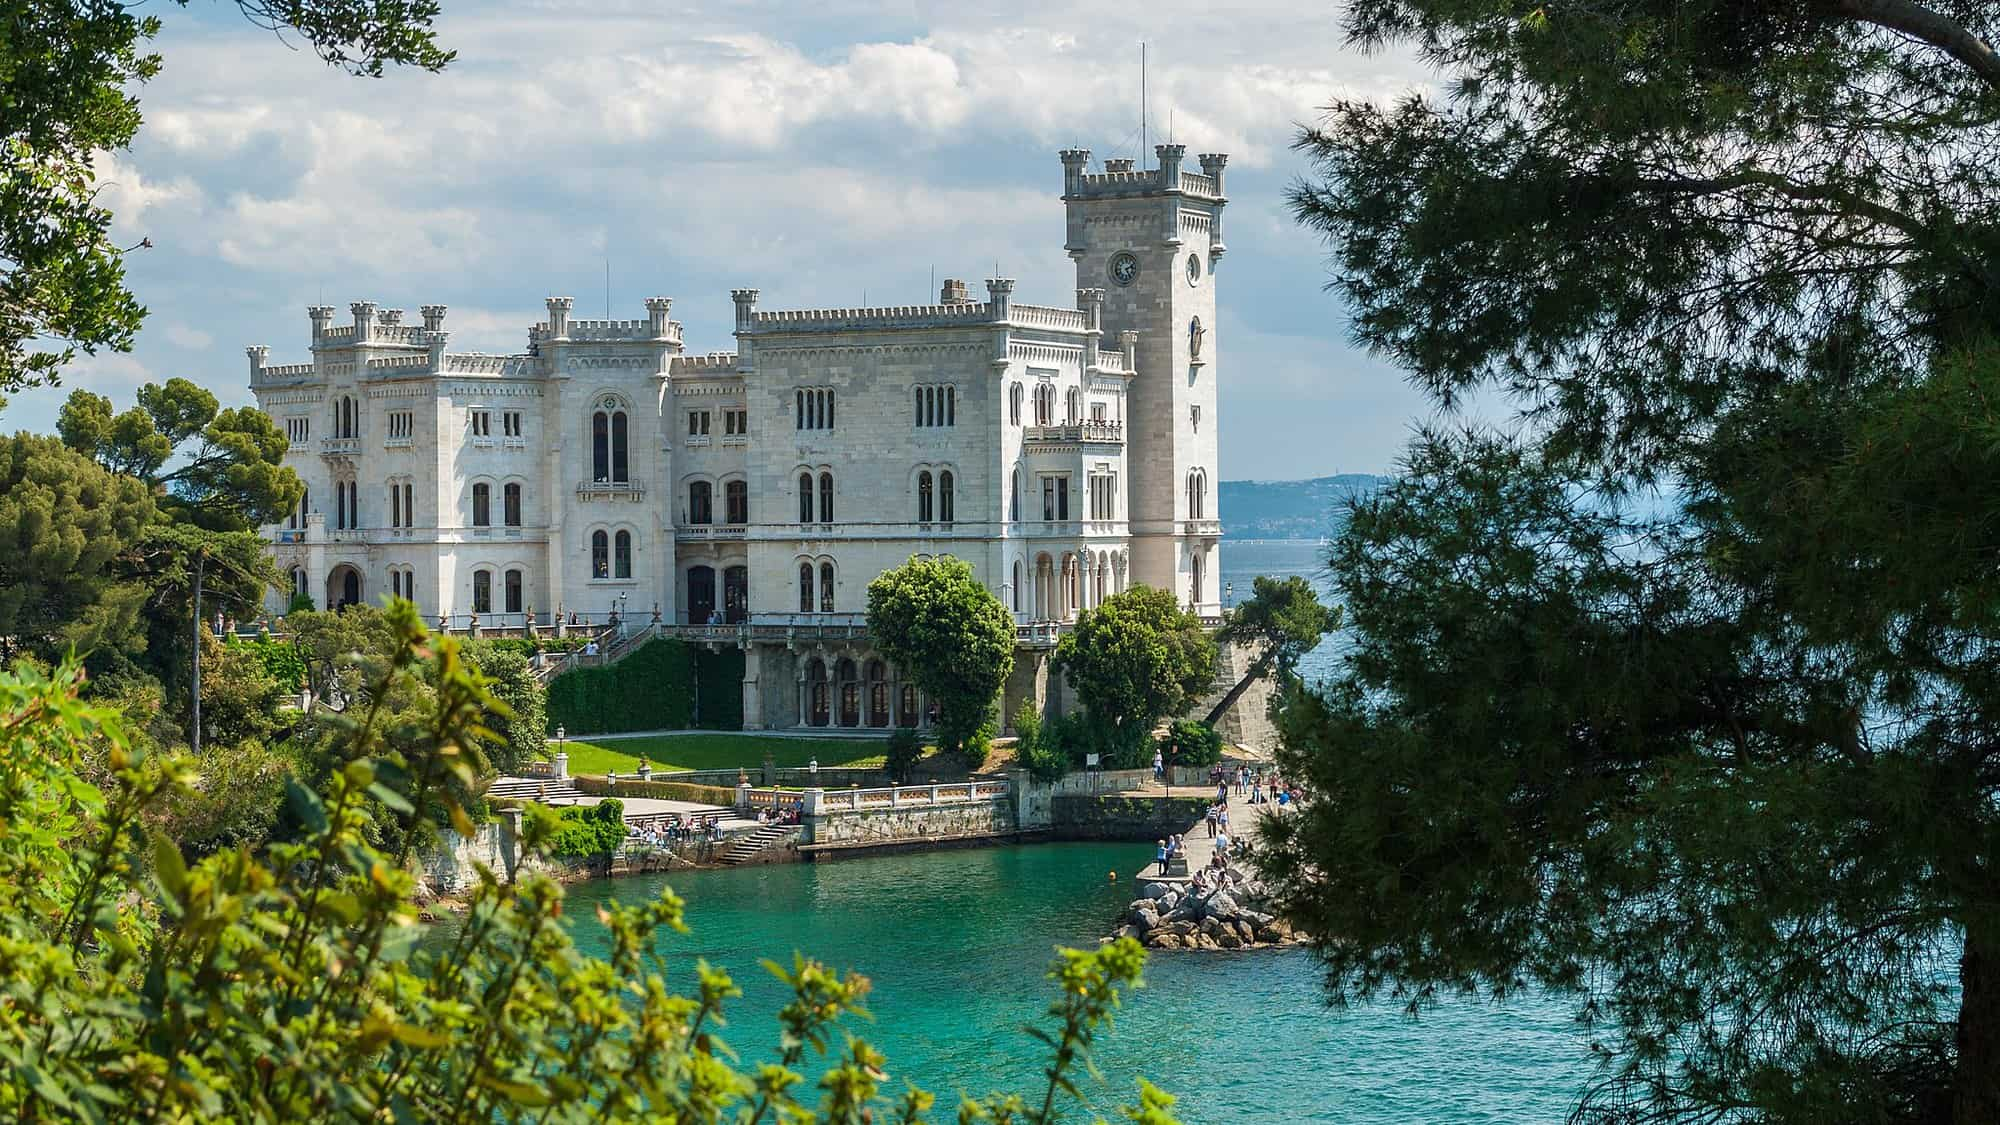 Italy - Trieste - Miramare Castle - Best things to do in Trieste